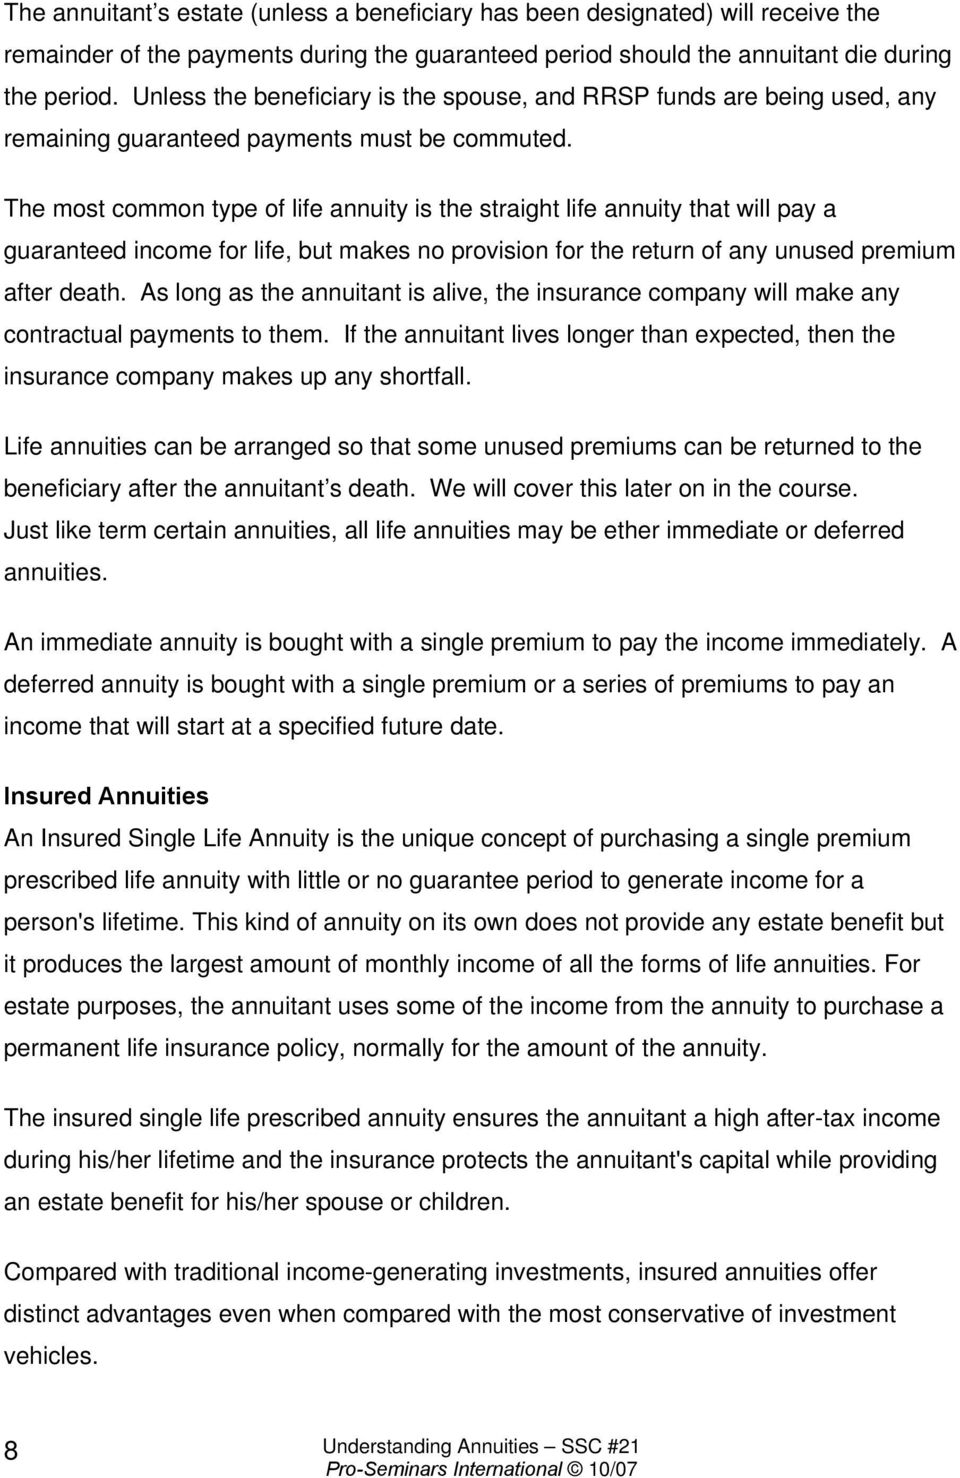 The most common type of life annuity is the straight life annuity that will pay a guaranteed income for life, but makes no provision for the return of any unused premium after death.